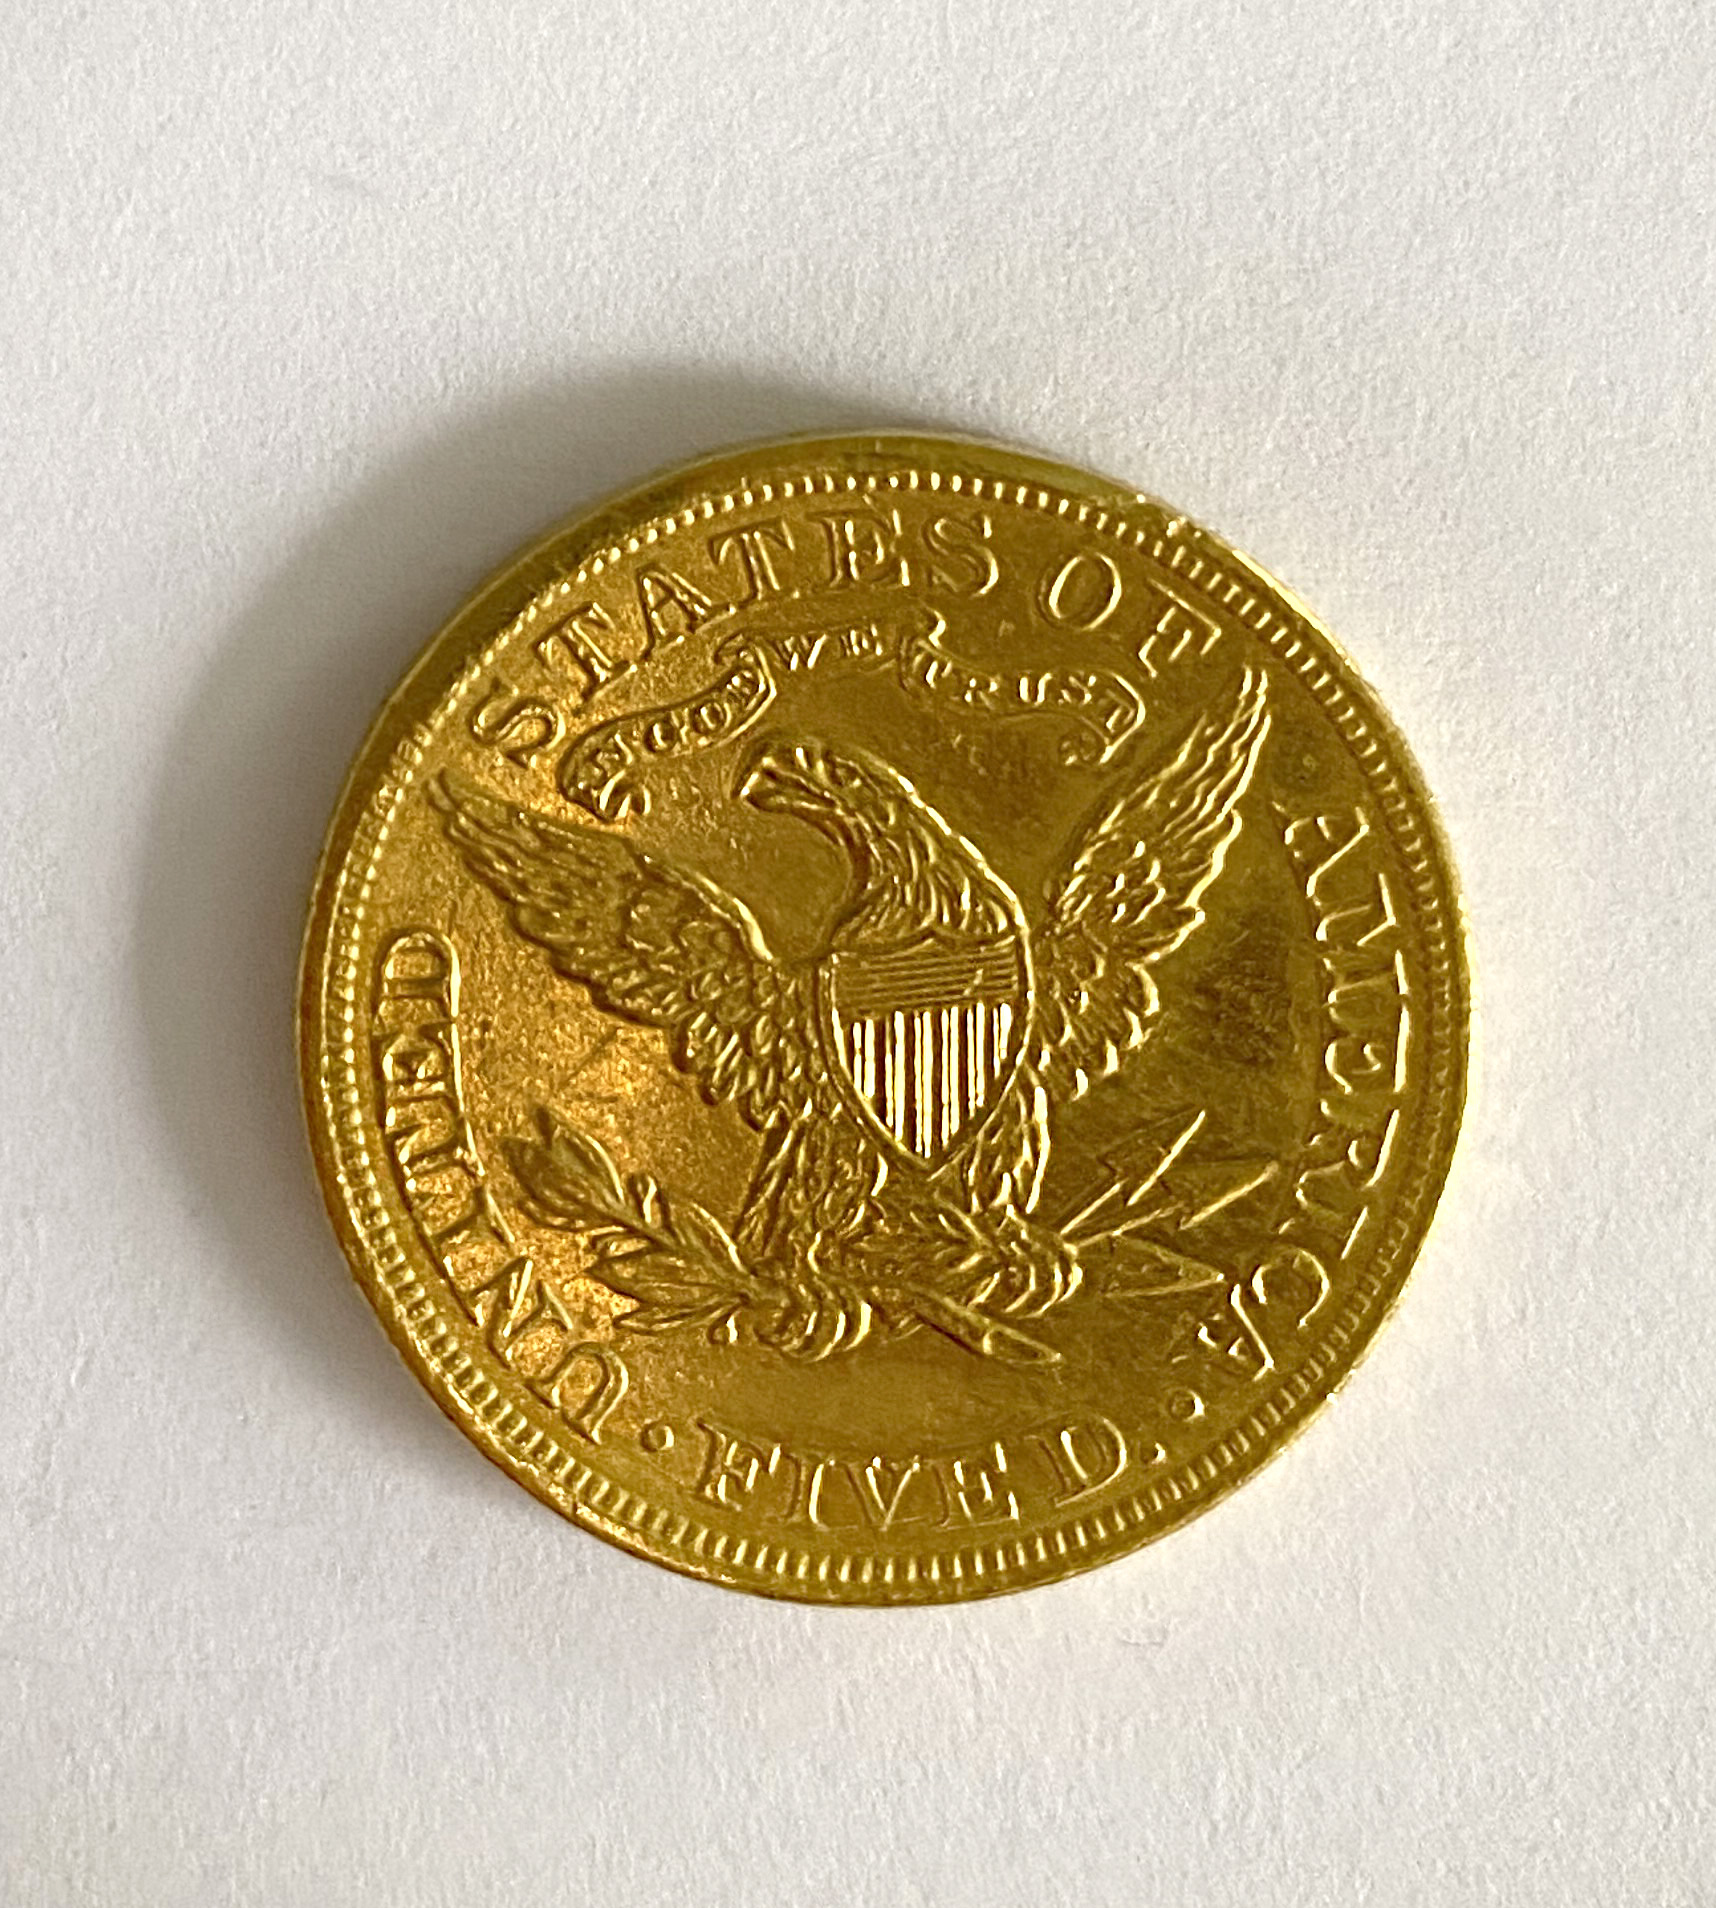 A United States of America $5 coin, - Image 2 of 2